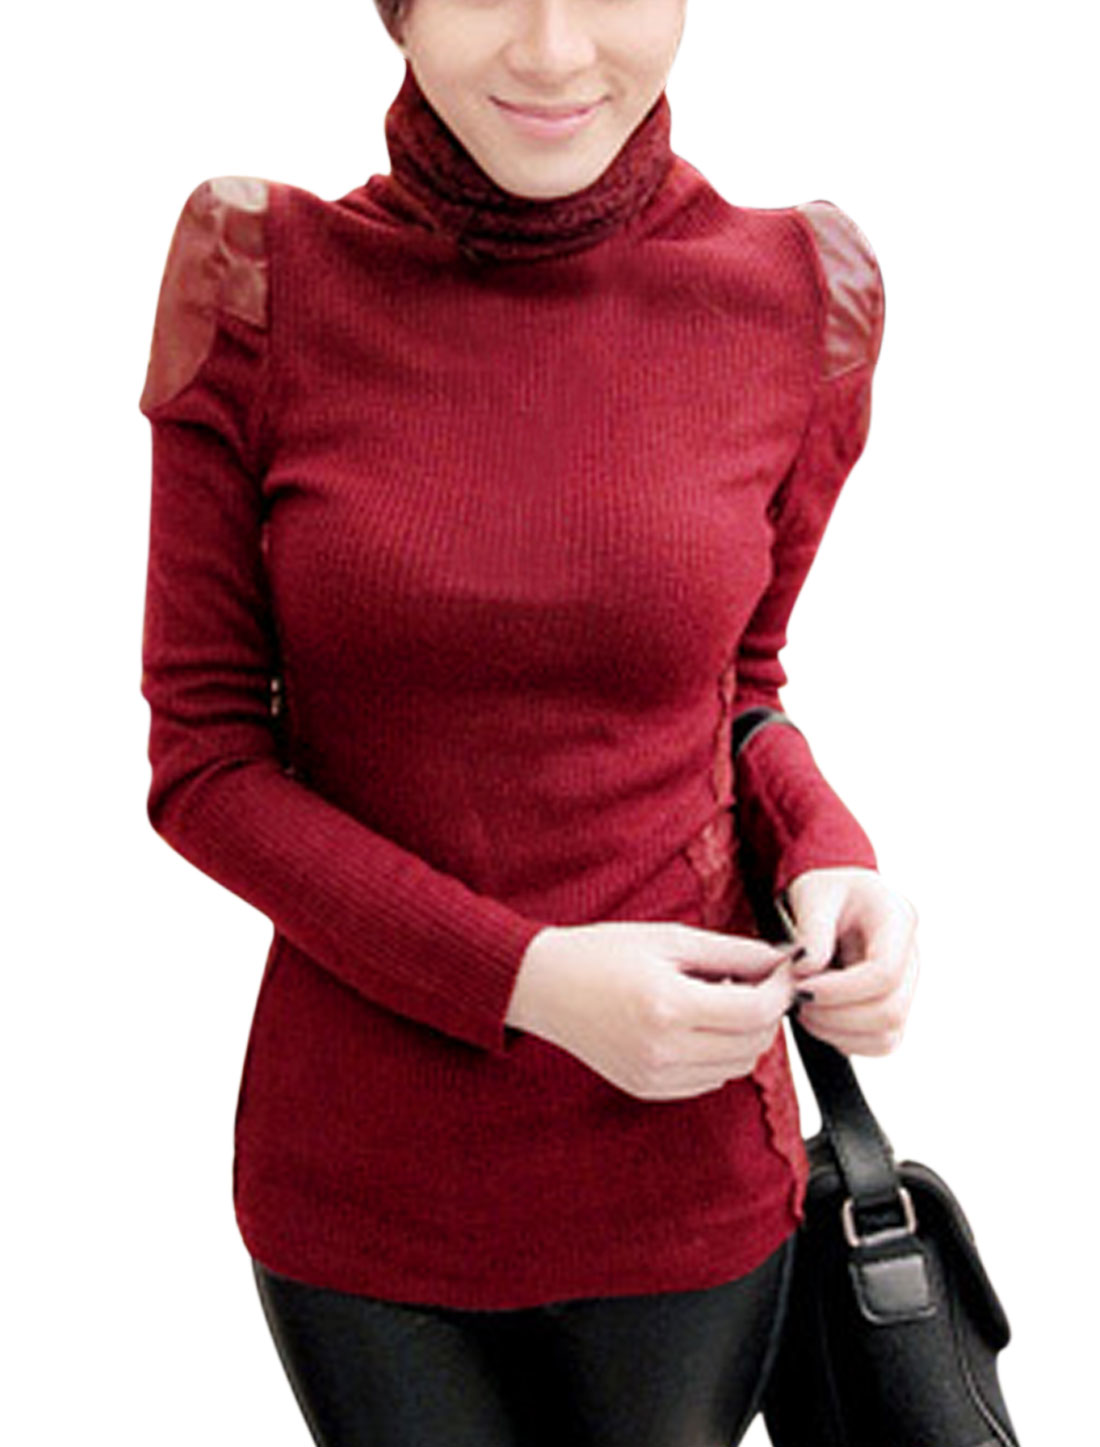 Slim Fit Lace Panel Sides Burgundy Knit Shirt for Women M